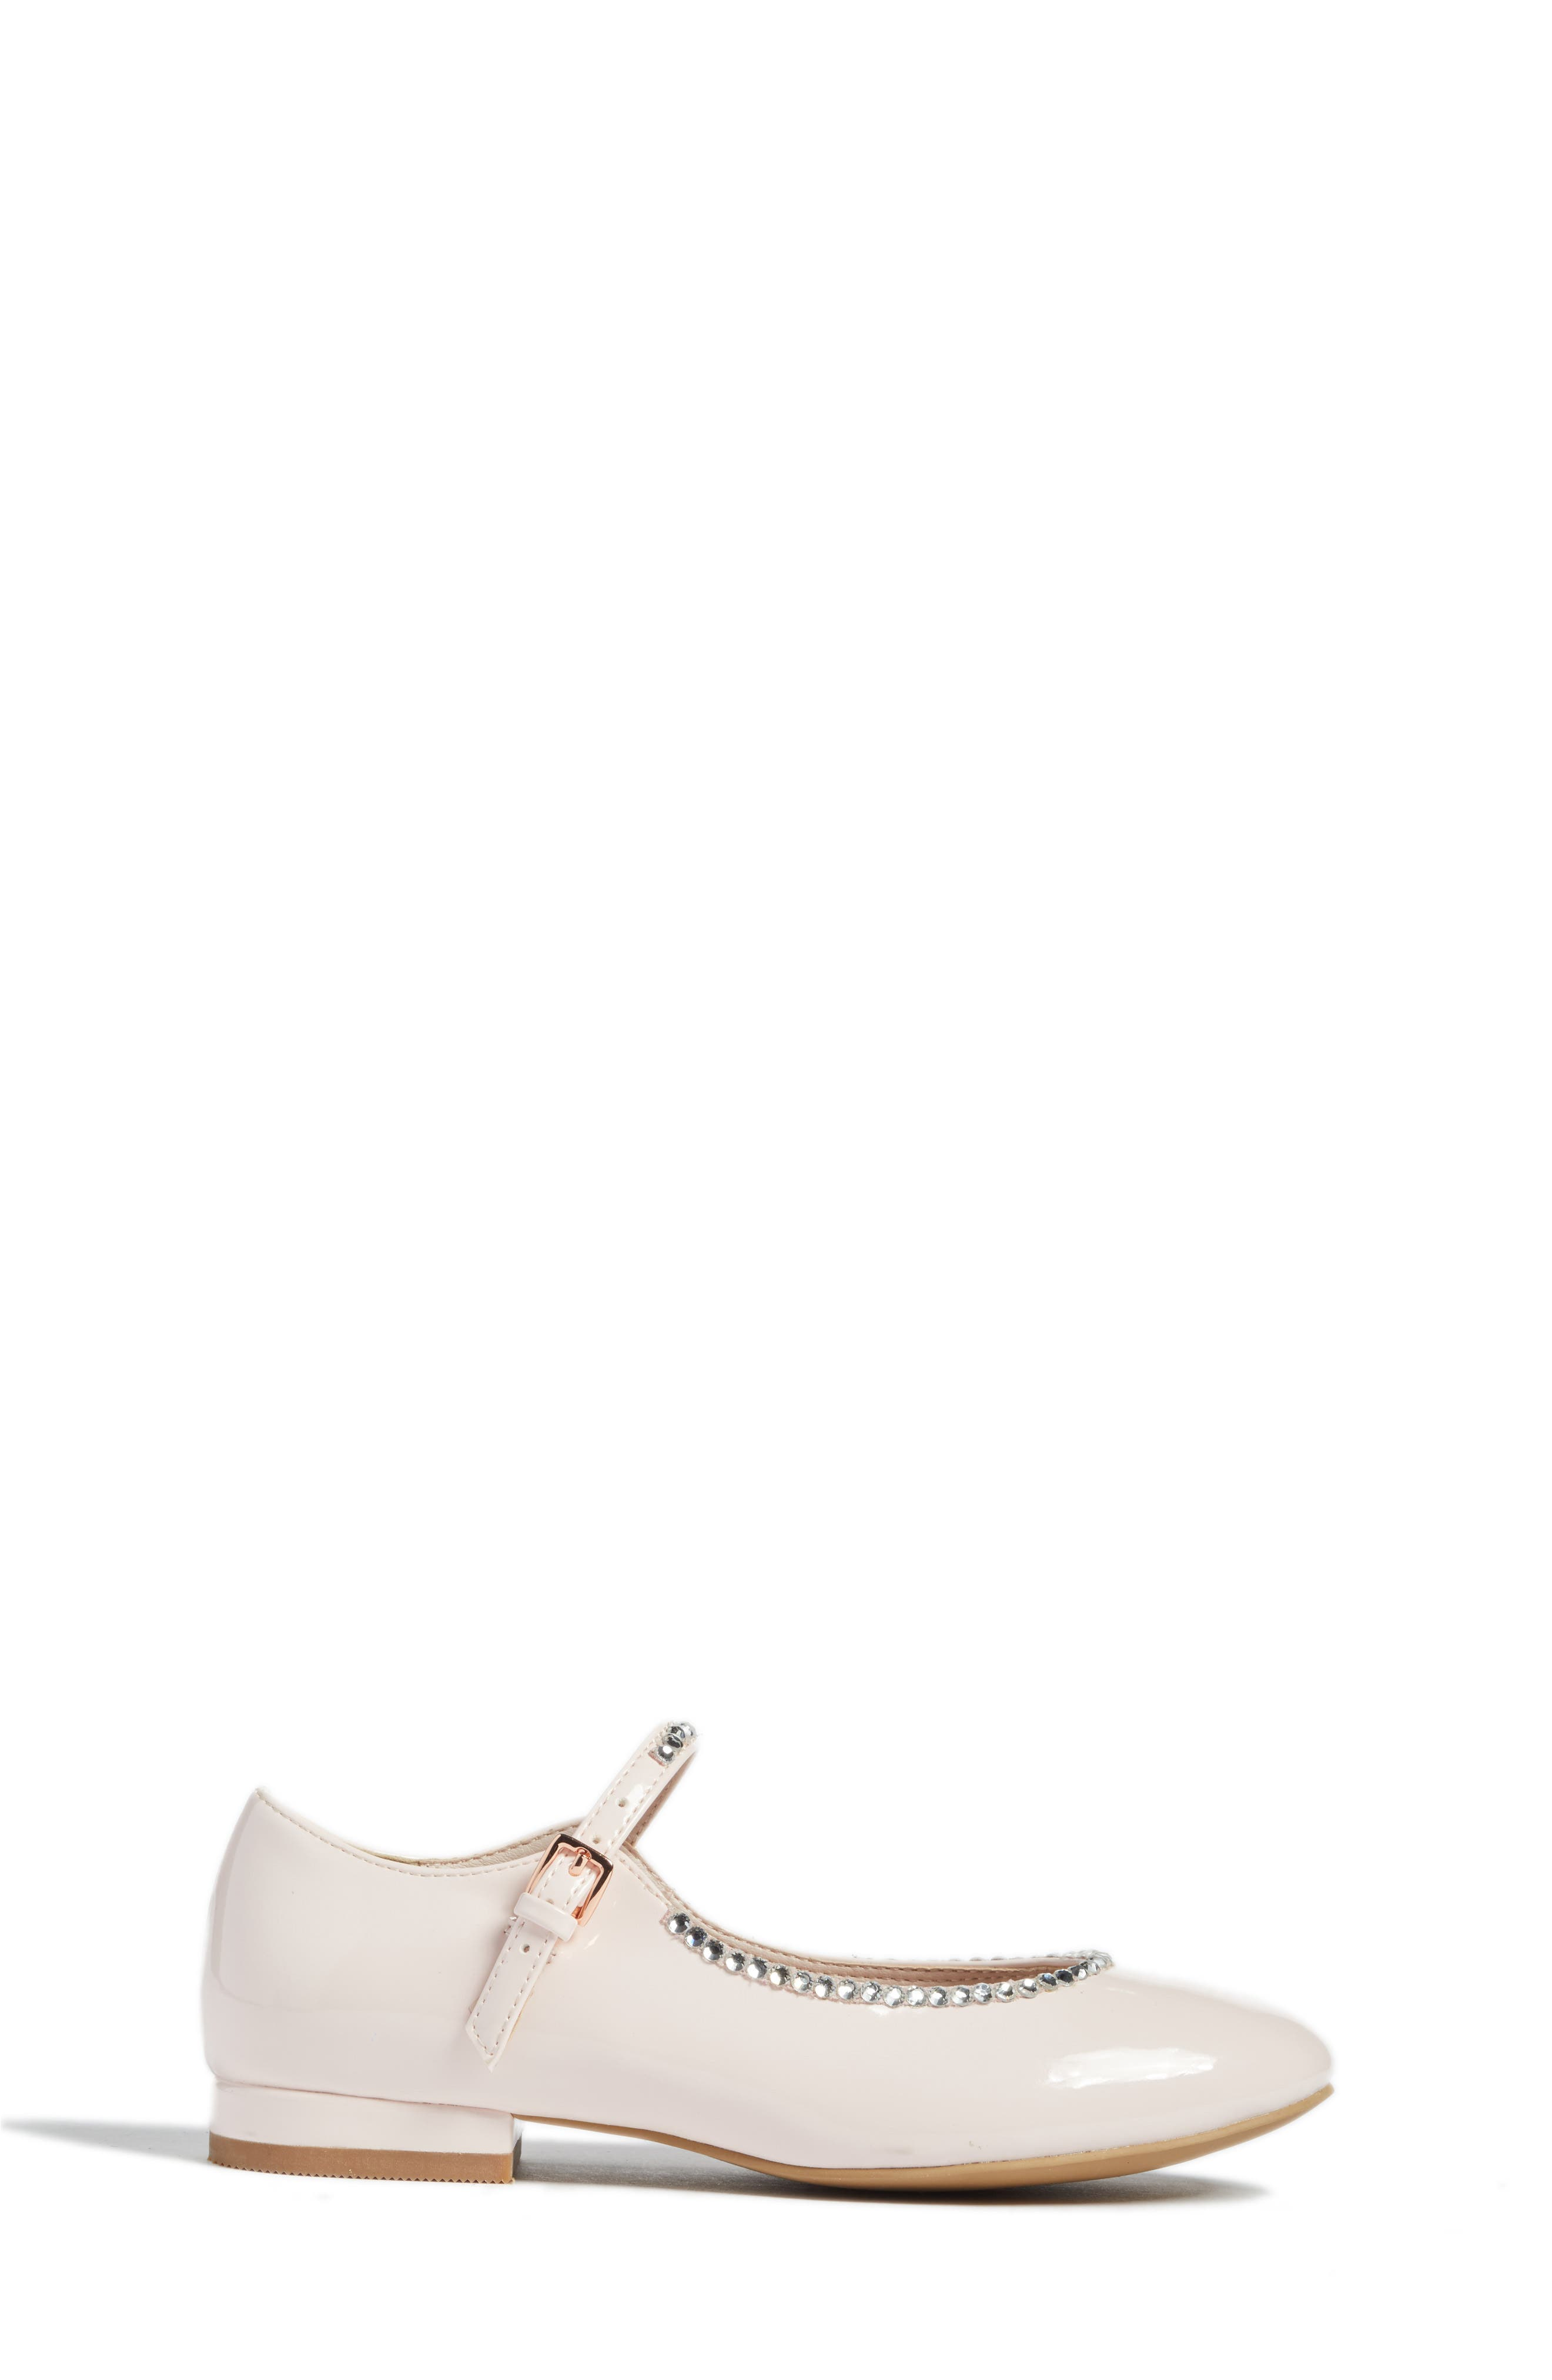 Harlow Embellished Mary Jane,                             Alternate thumbnail 3, color,                             Pale Pink Faux Patent